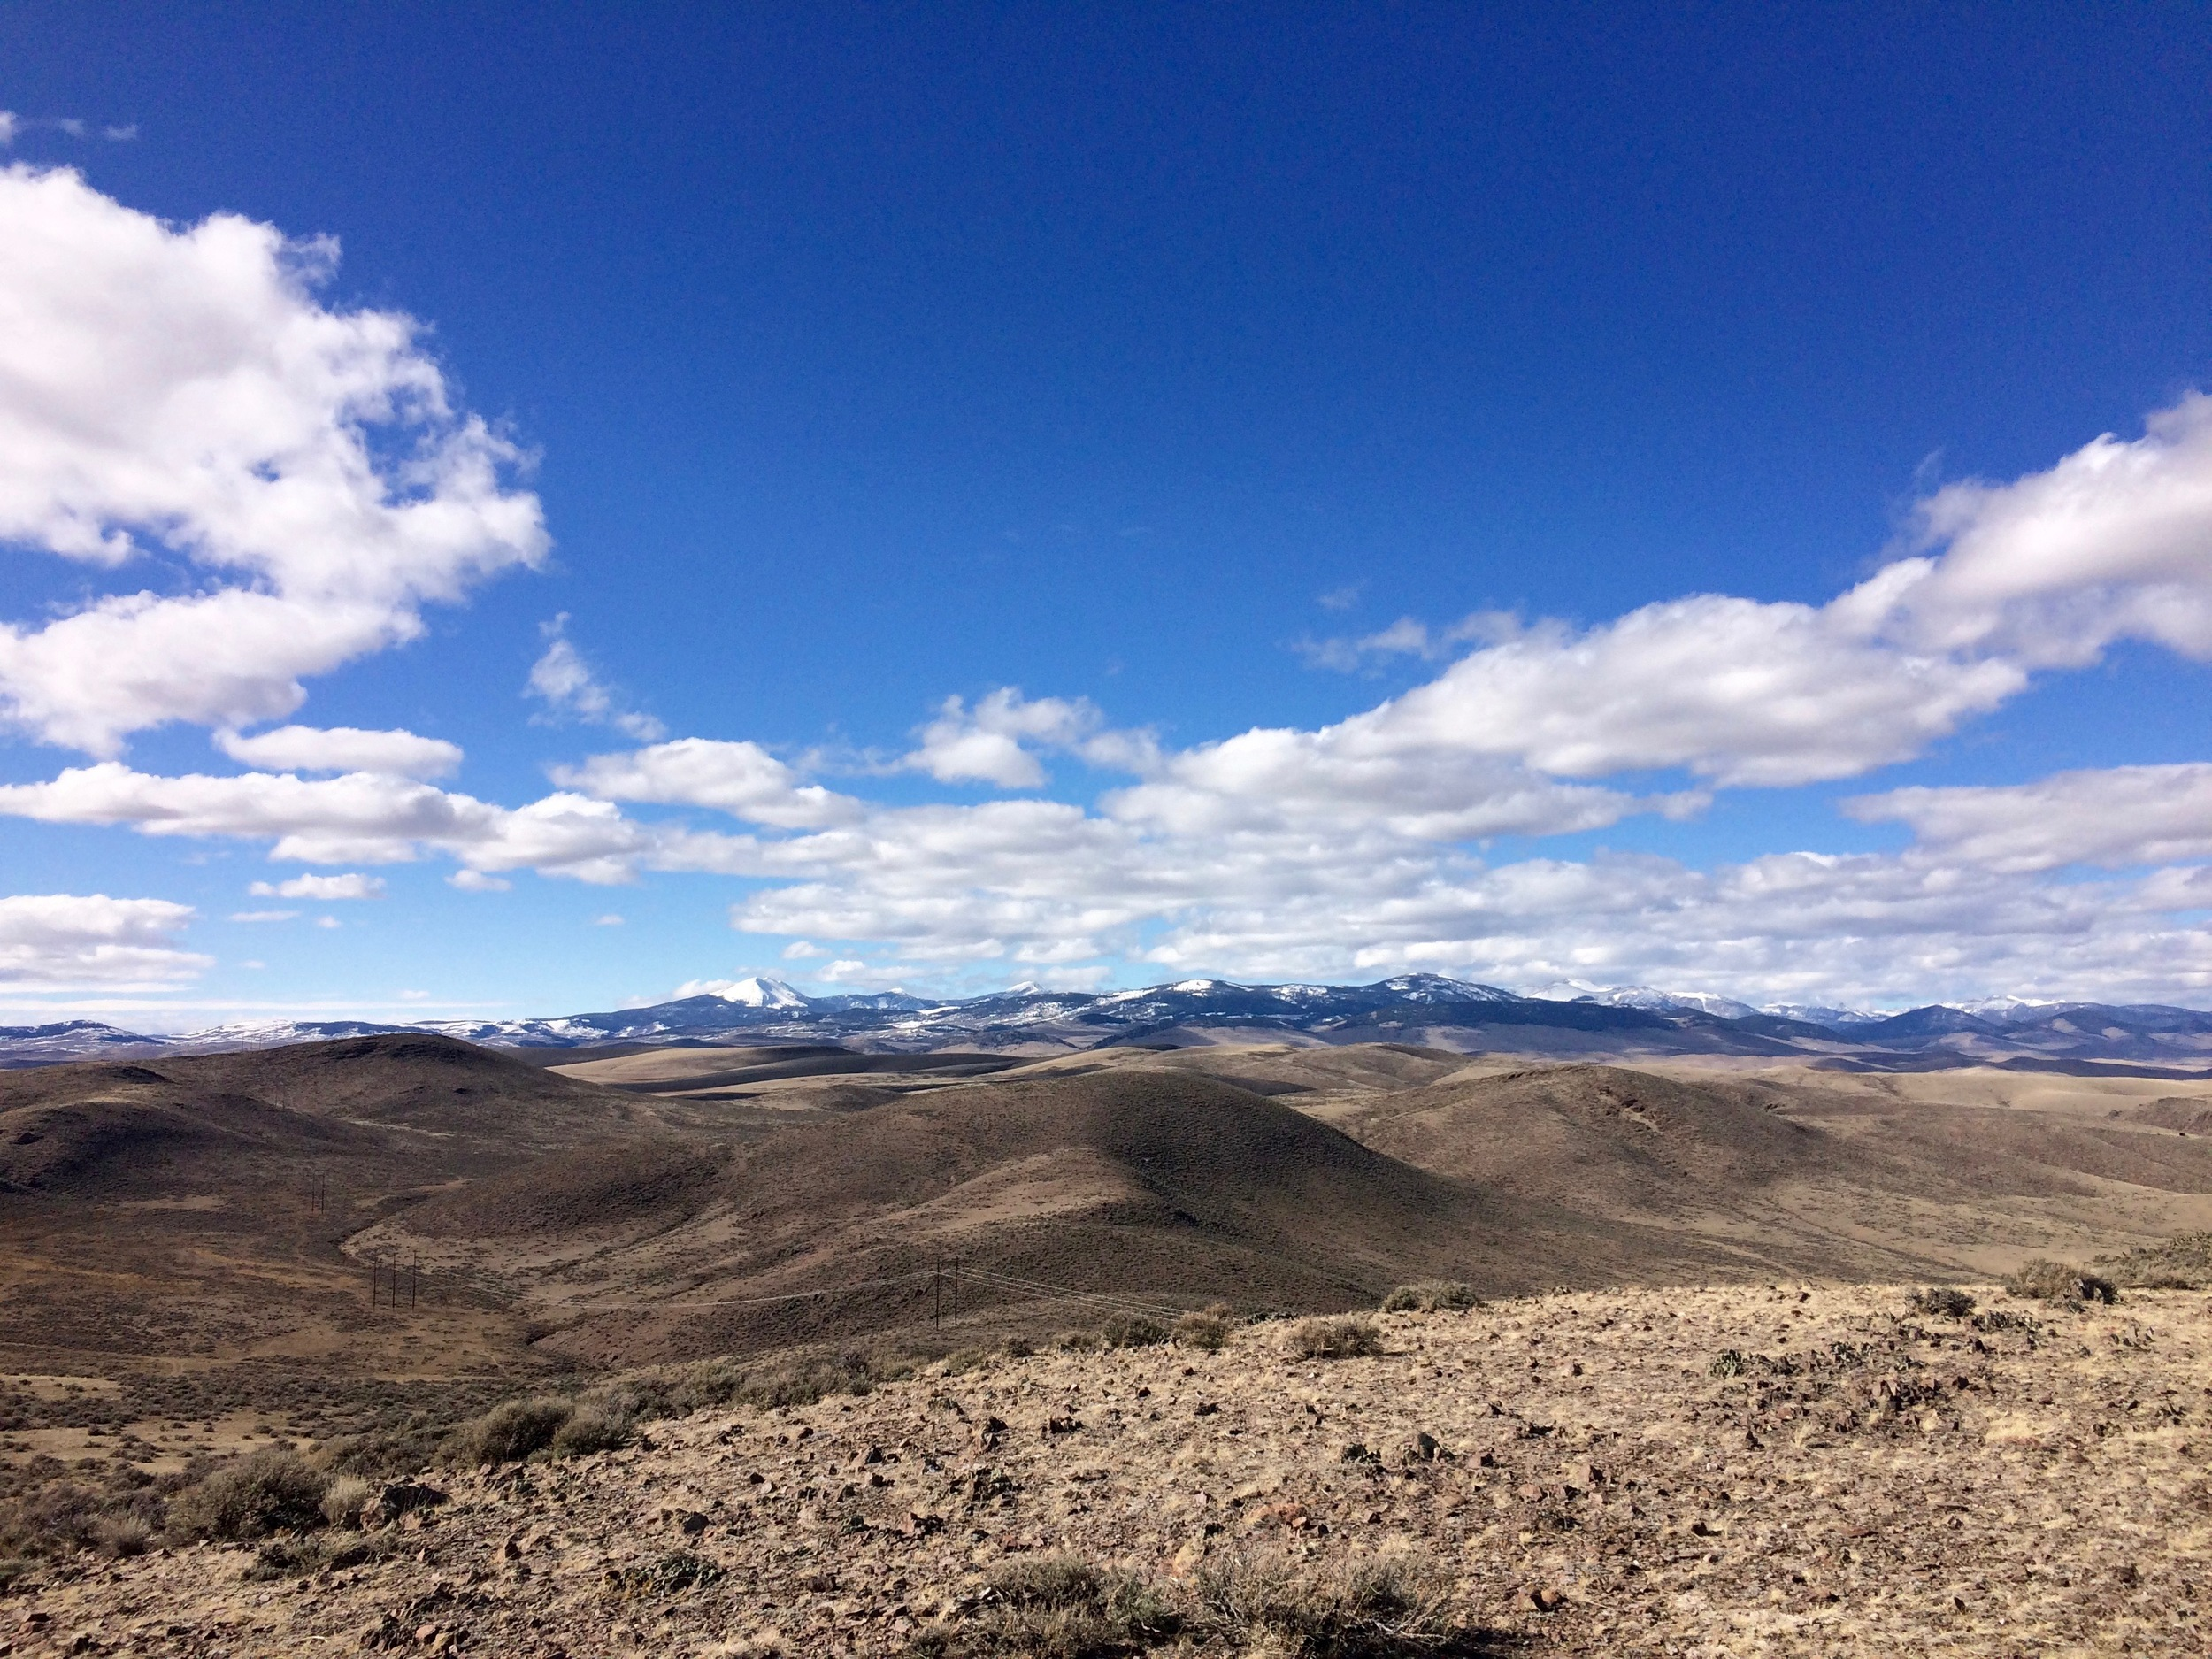 View from a recent walk on the Dillon Town Overlook Trail. Mount Baldy, the Pioneer Mountains, is on the horizon and likely to appear as a trail entry in this blog later in the year.